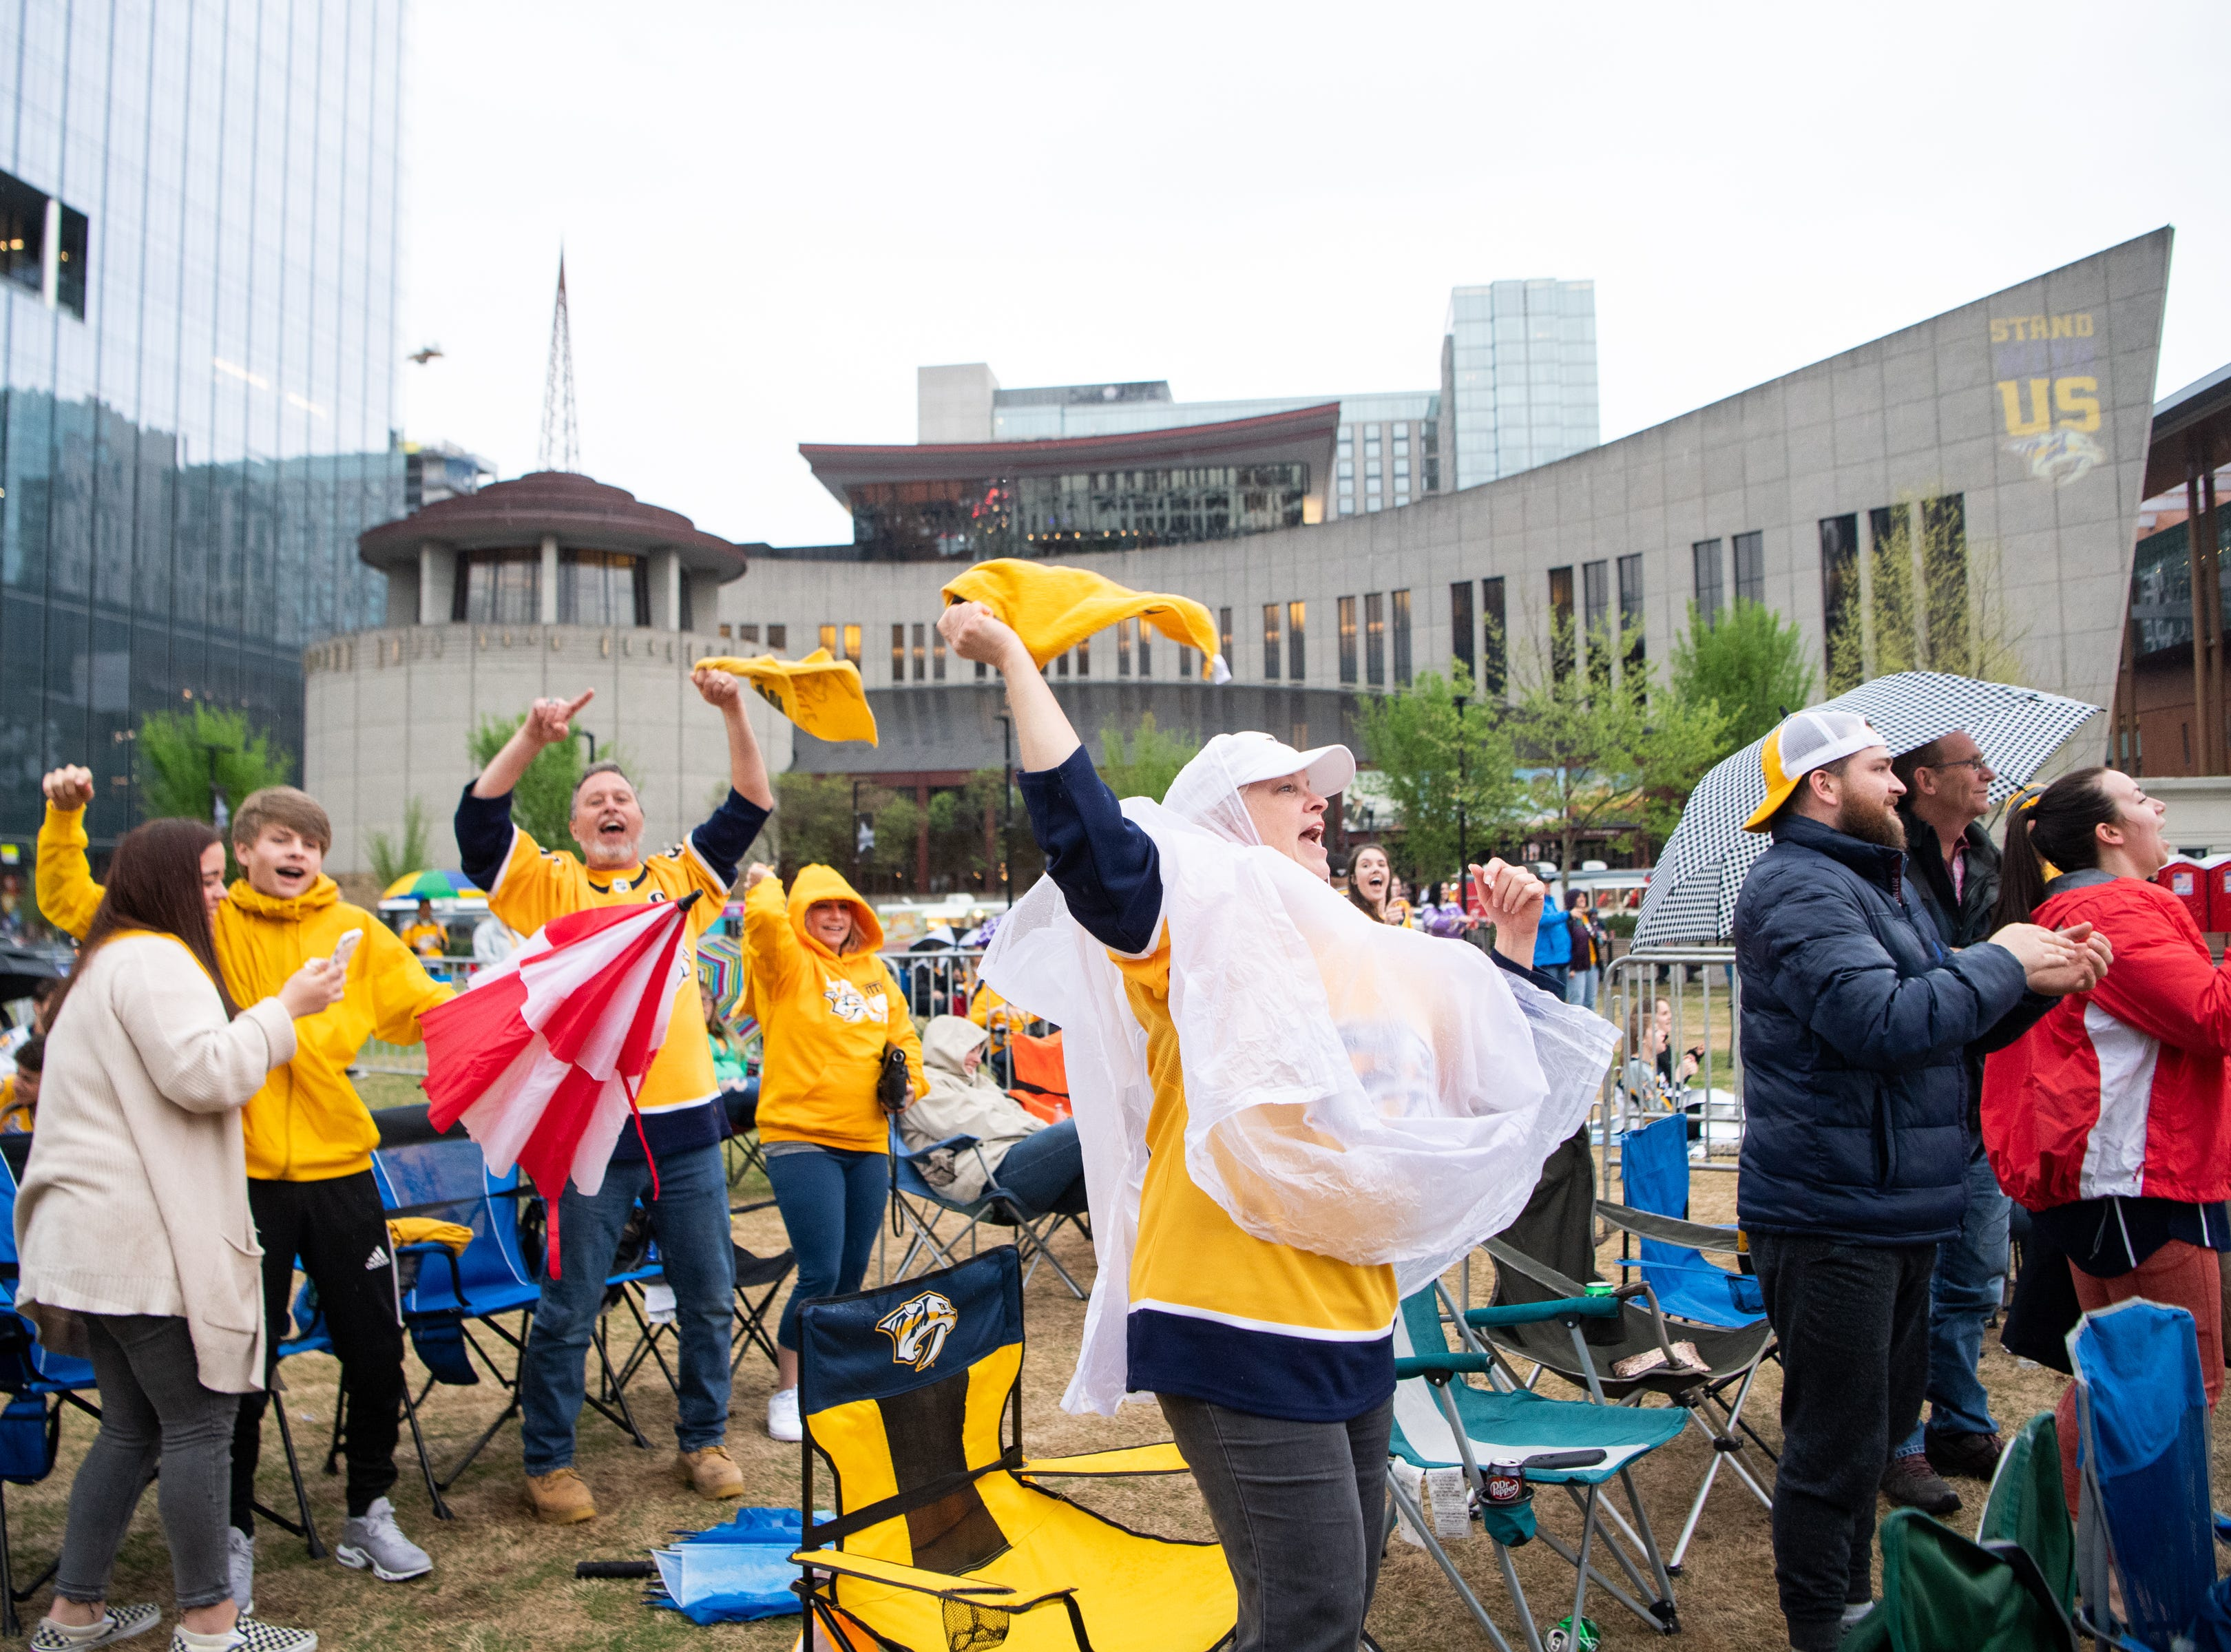 Lori Cunningham (center) celebrates the Nashville Predators' goal against the Dallas Stars during the second period at Preds Party in the Park at Walk of Fame Park Saturday, April 13, 2019, in Nashville, Tenn.